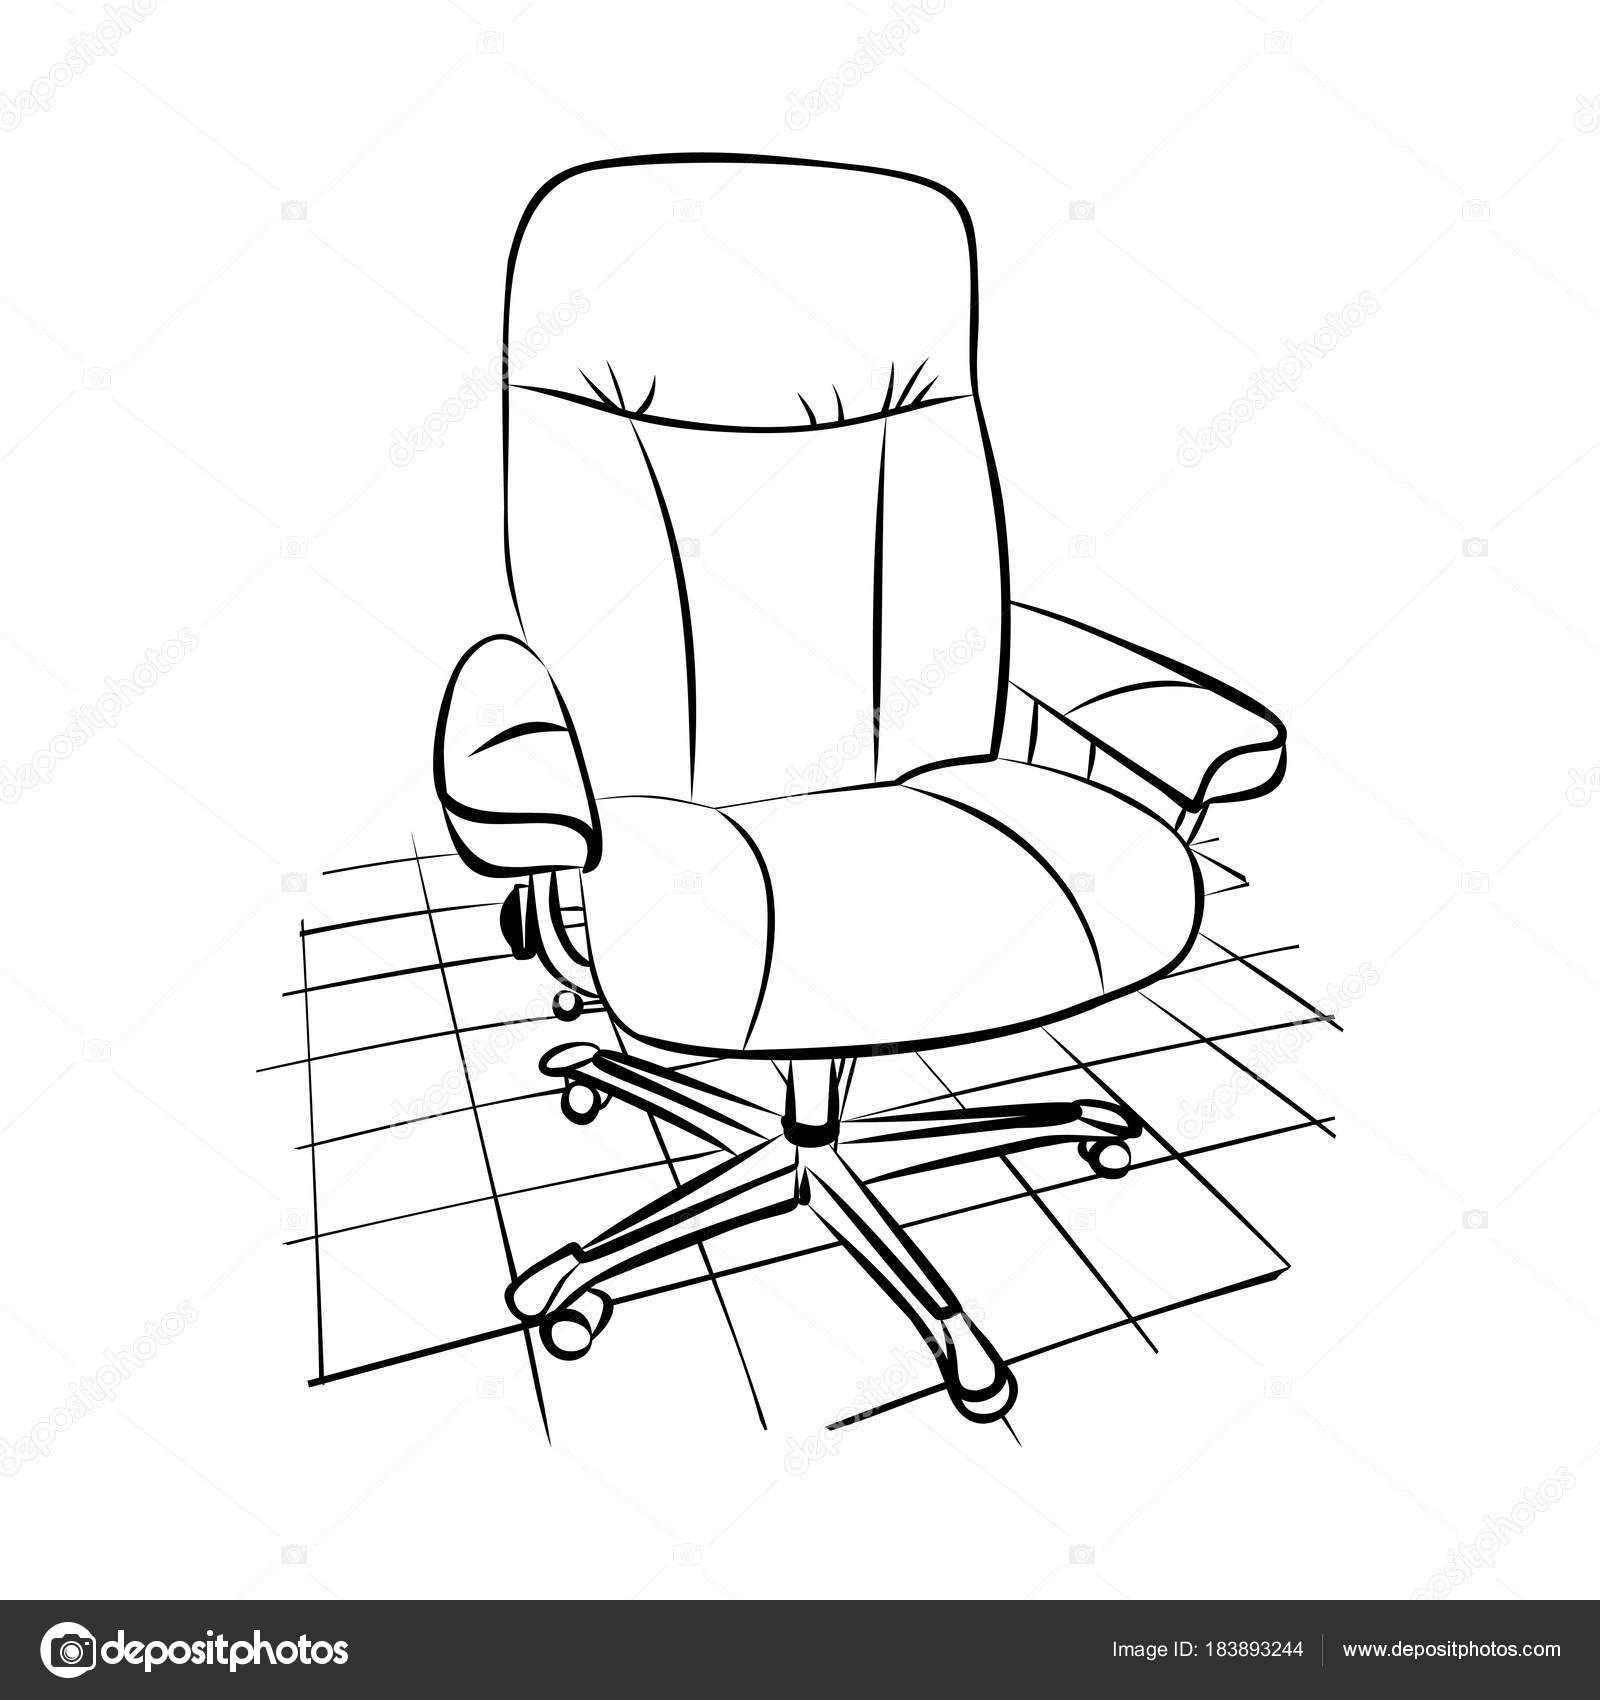 Graphisme Dessin Dune Chaise De Bureau Sur Un Sol Carrele Illustration Stock